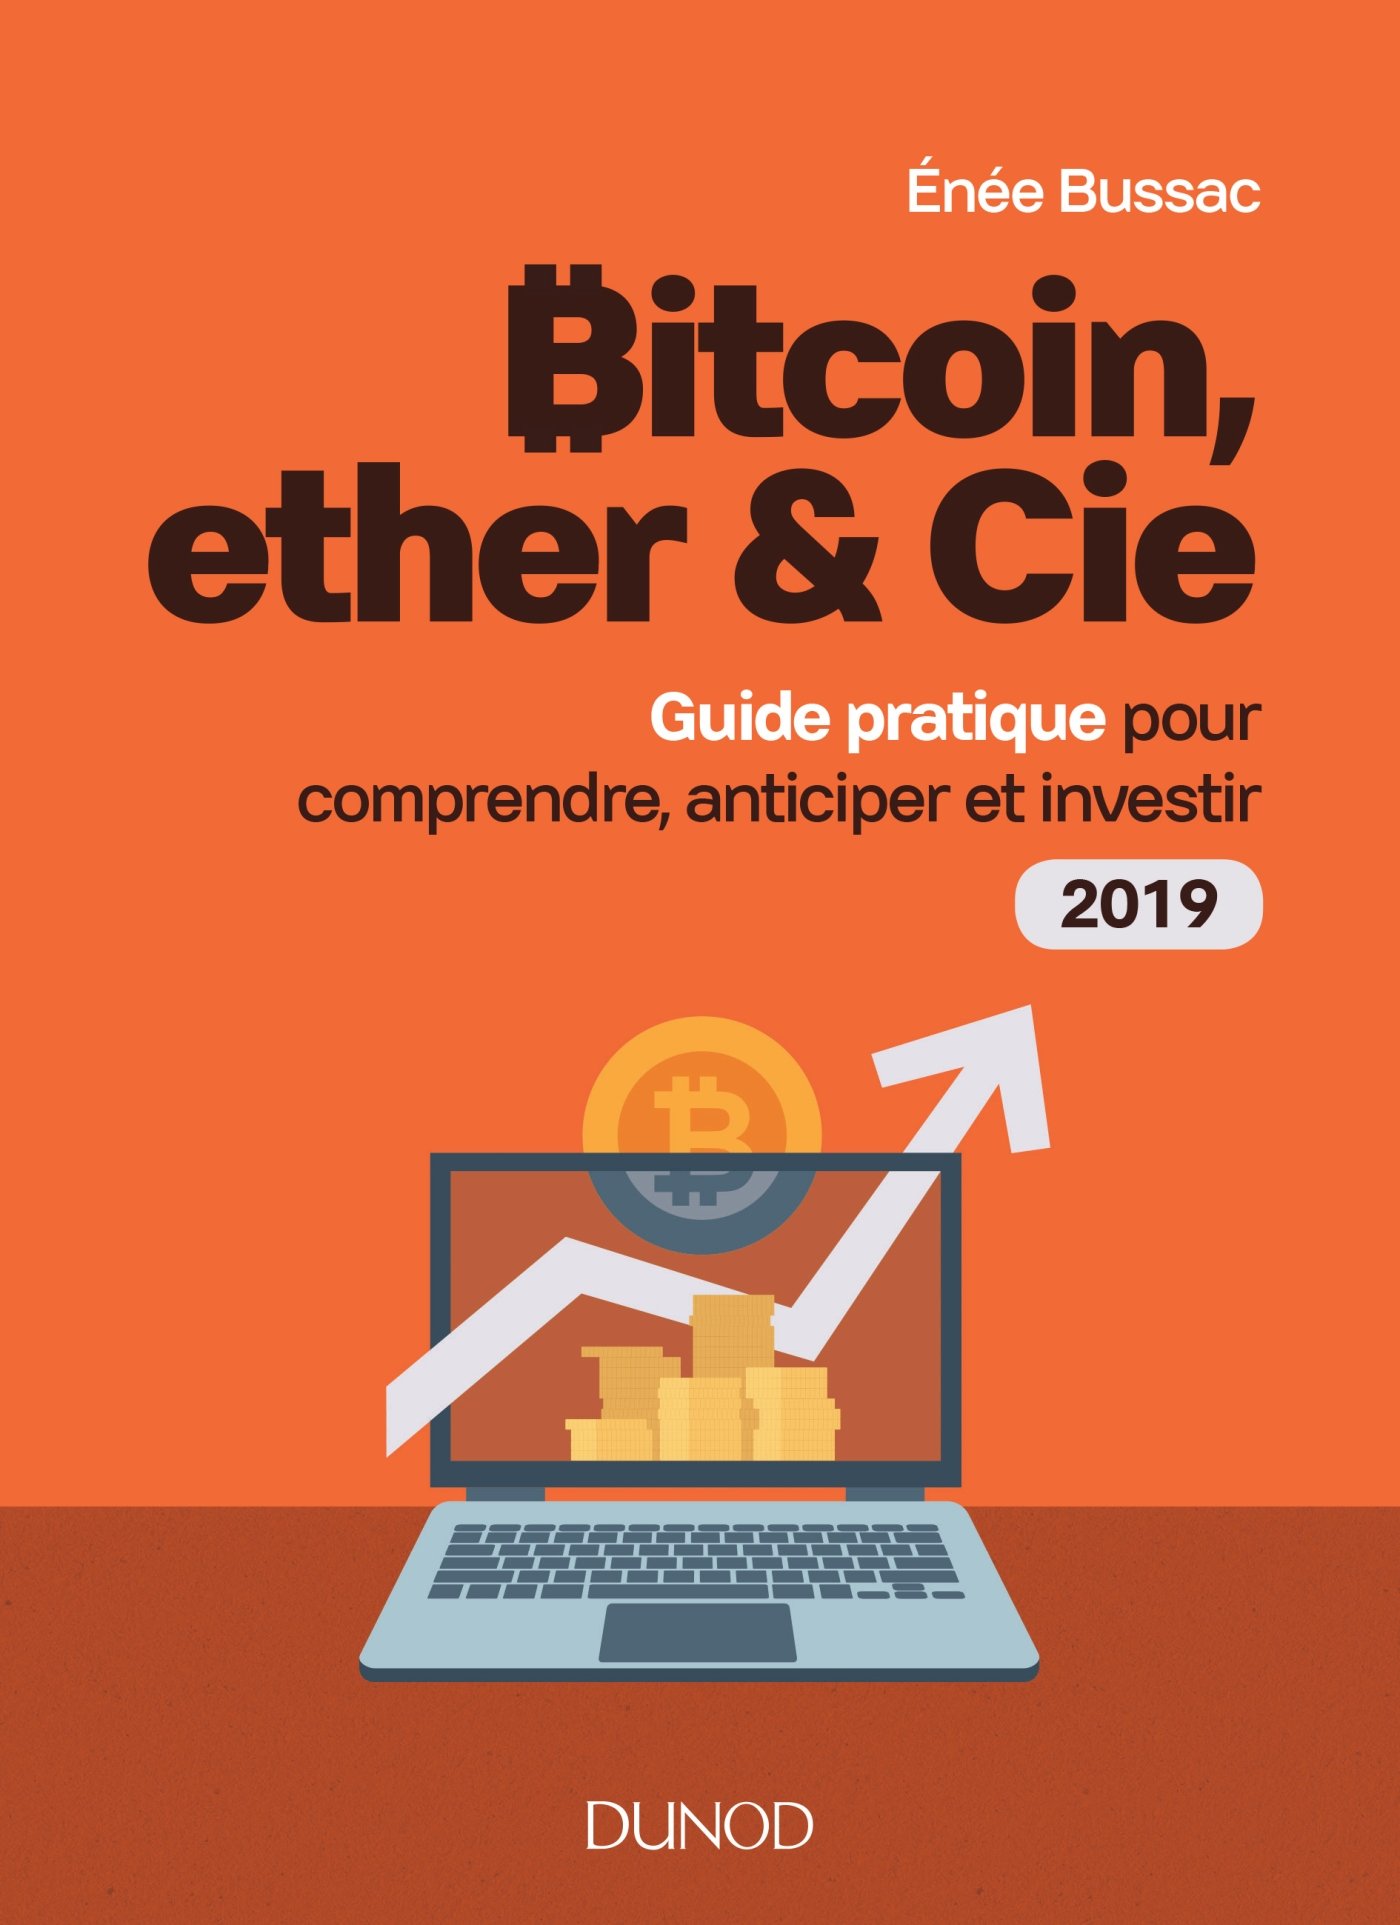 Bitcoin, ether & Cie